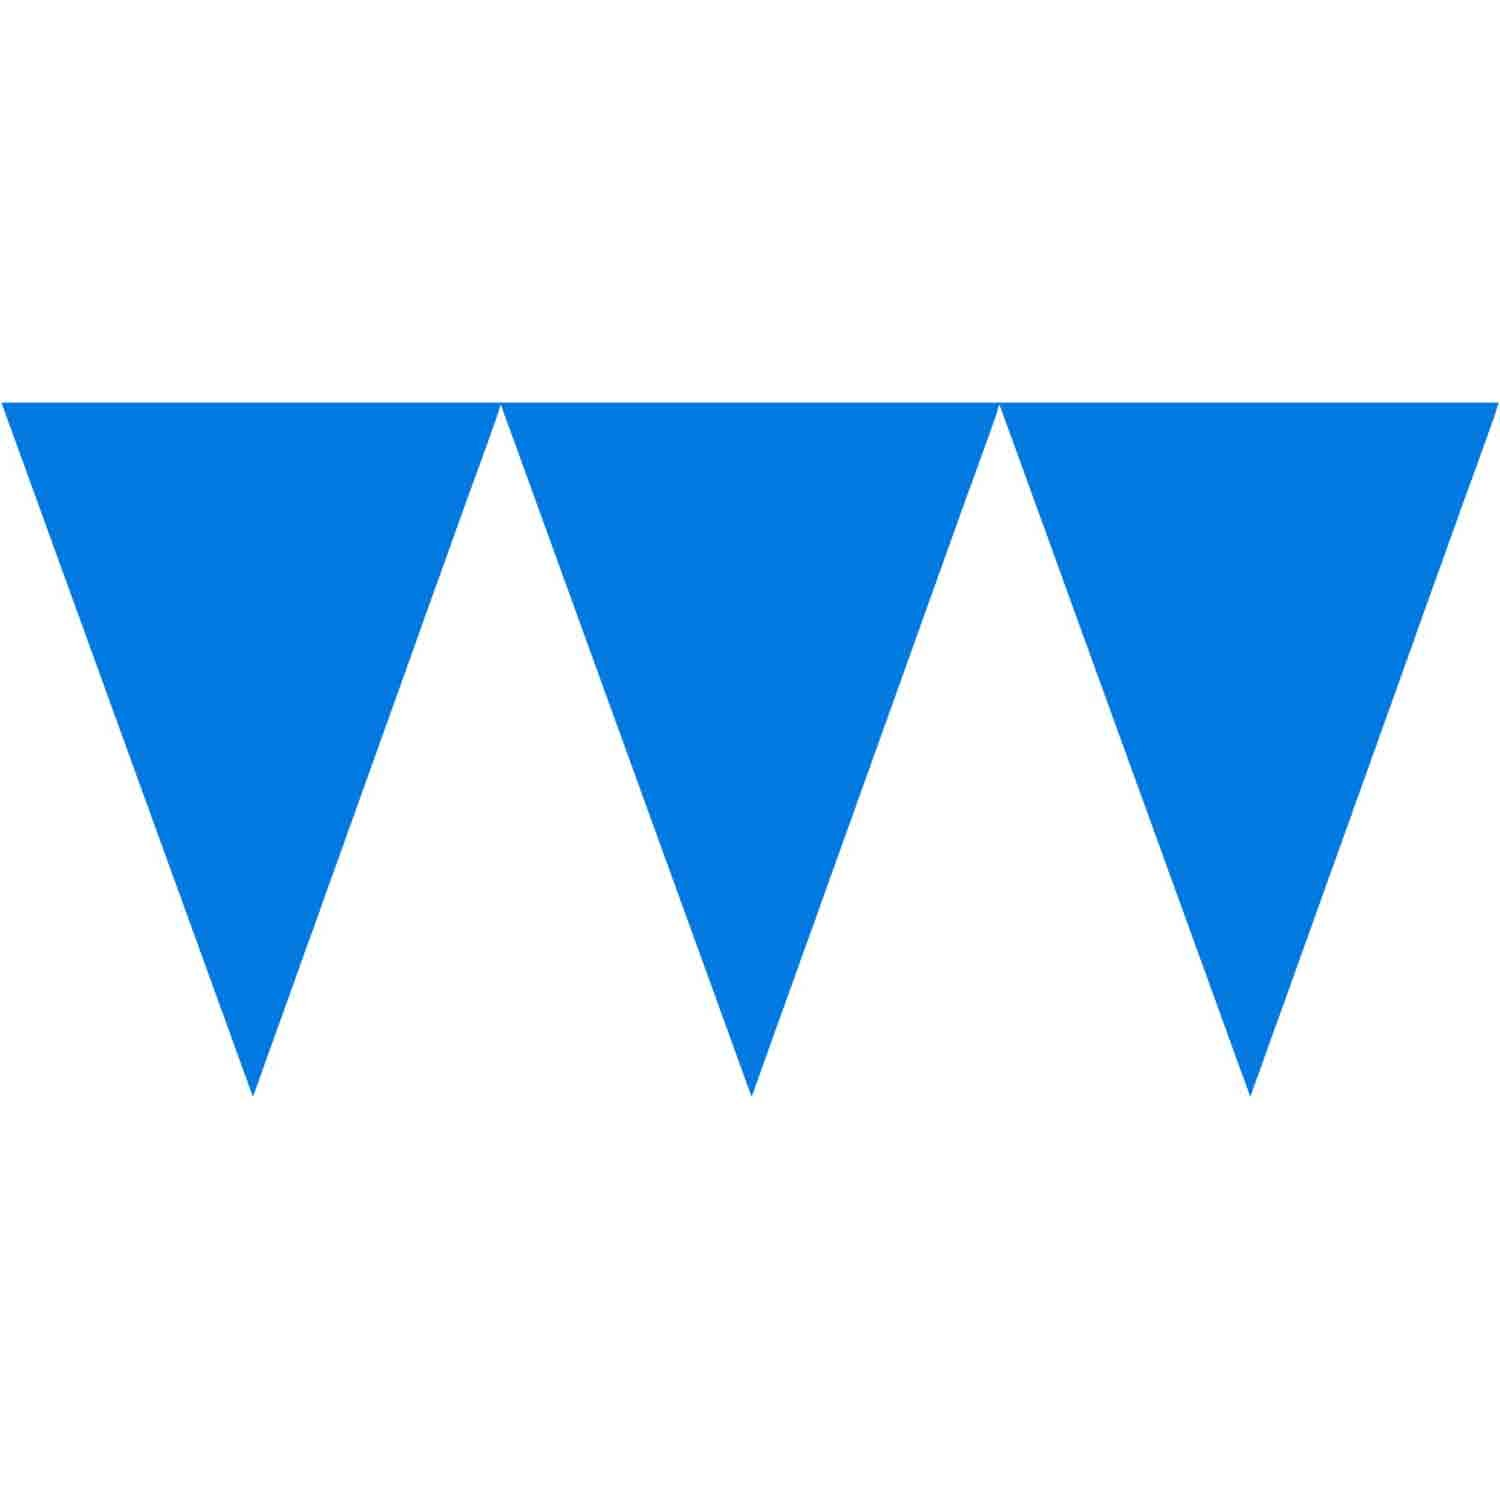 Paper Pennant Banner - Bright Royal Blue